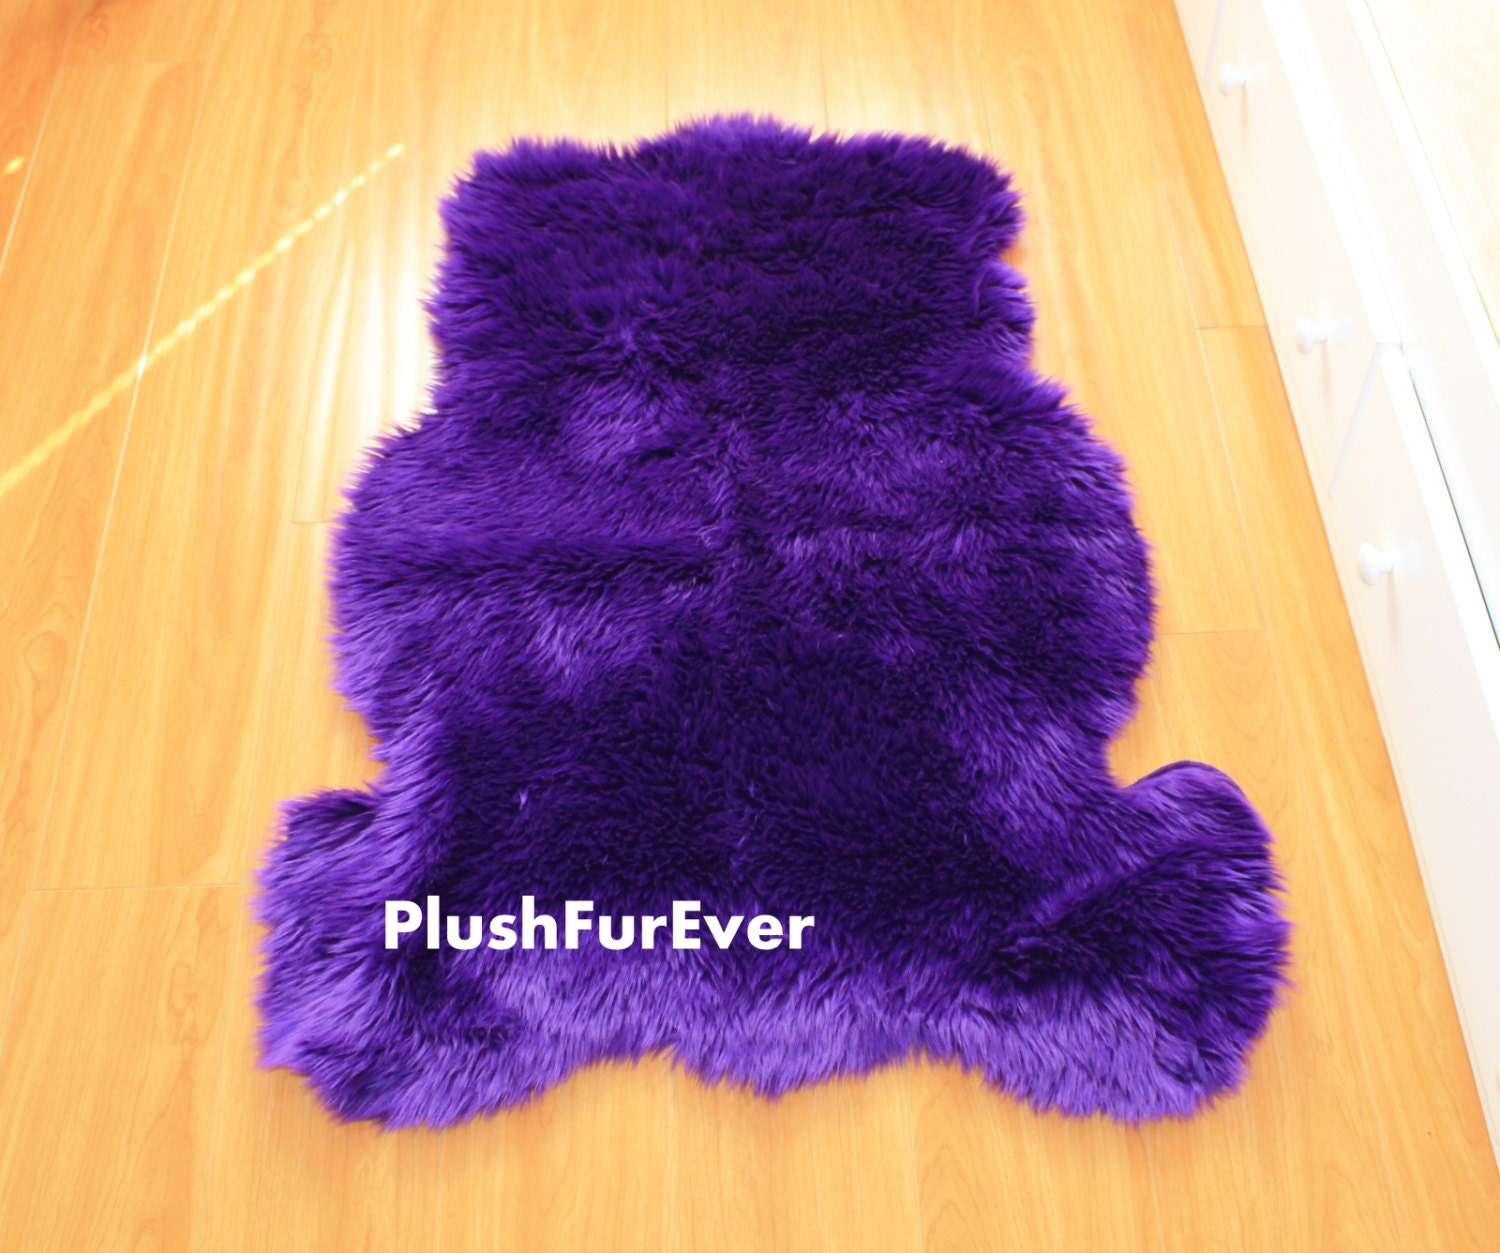 30 X 42 Purple Front-View Teddy Bear Rug Valentines Gift